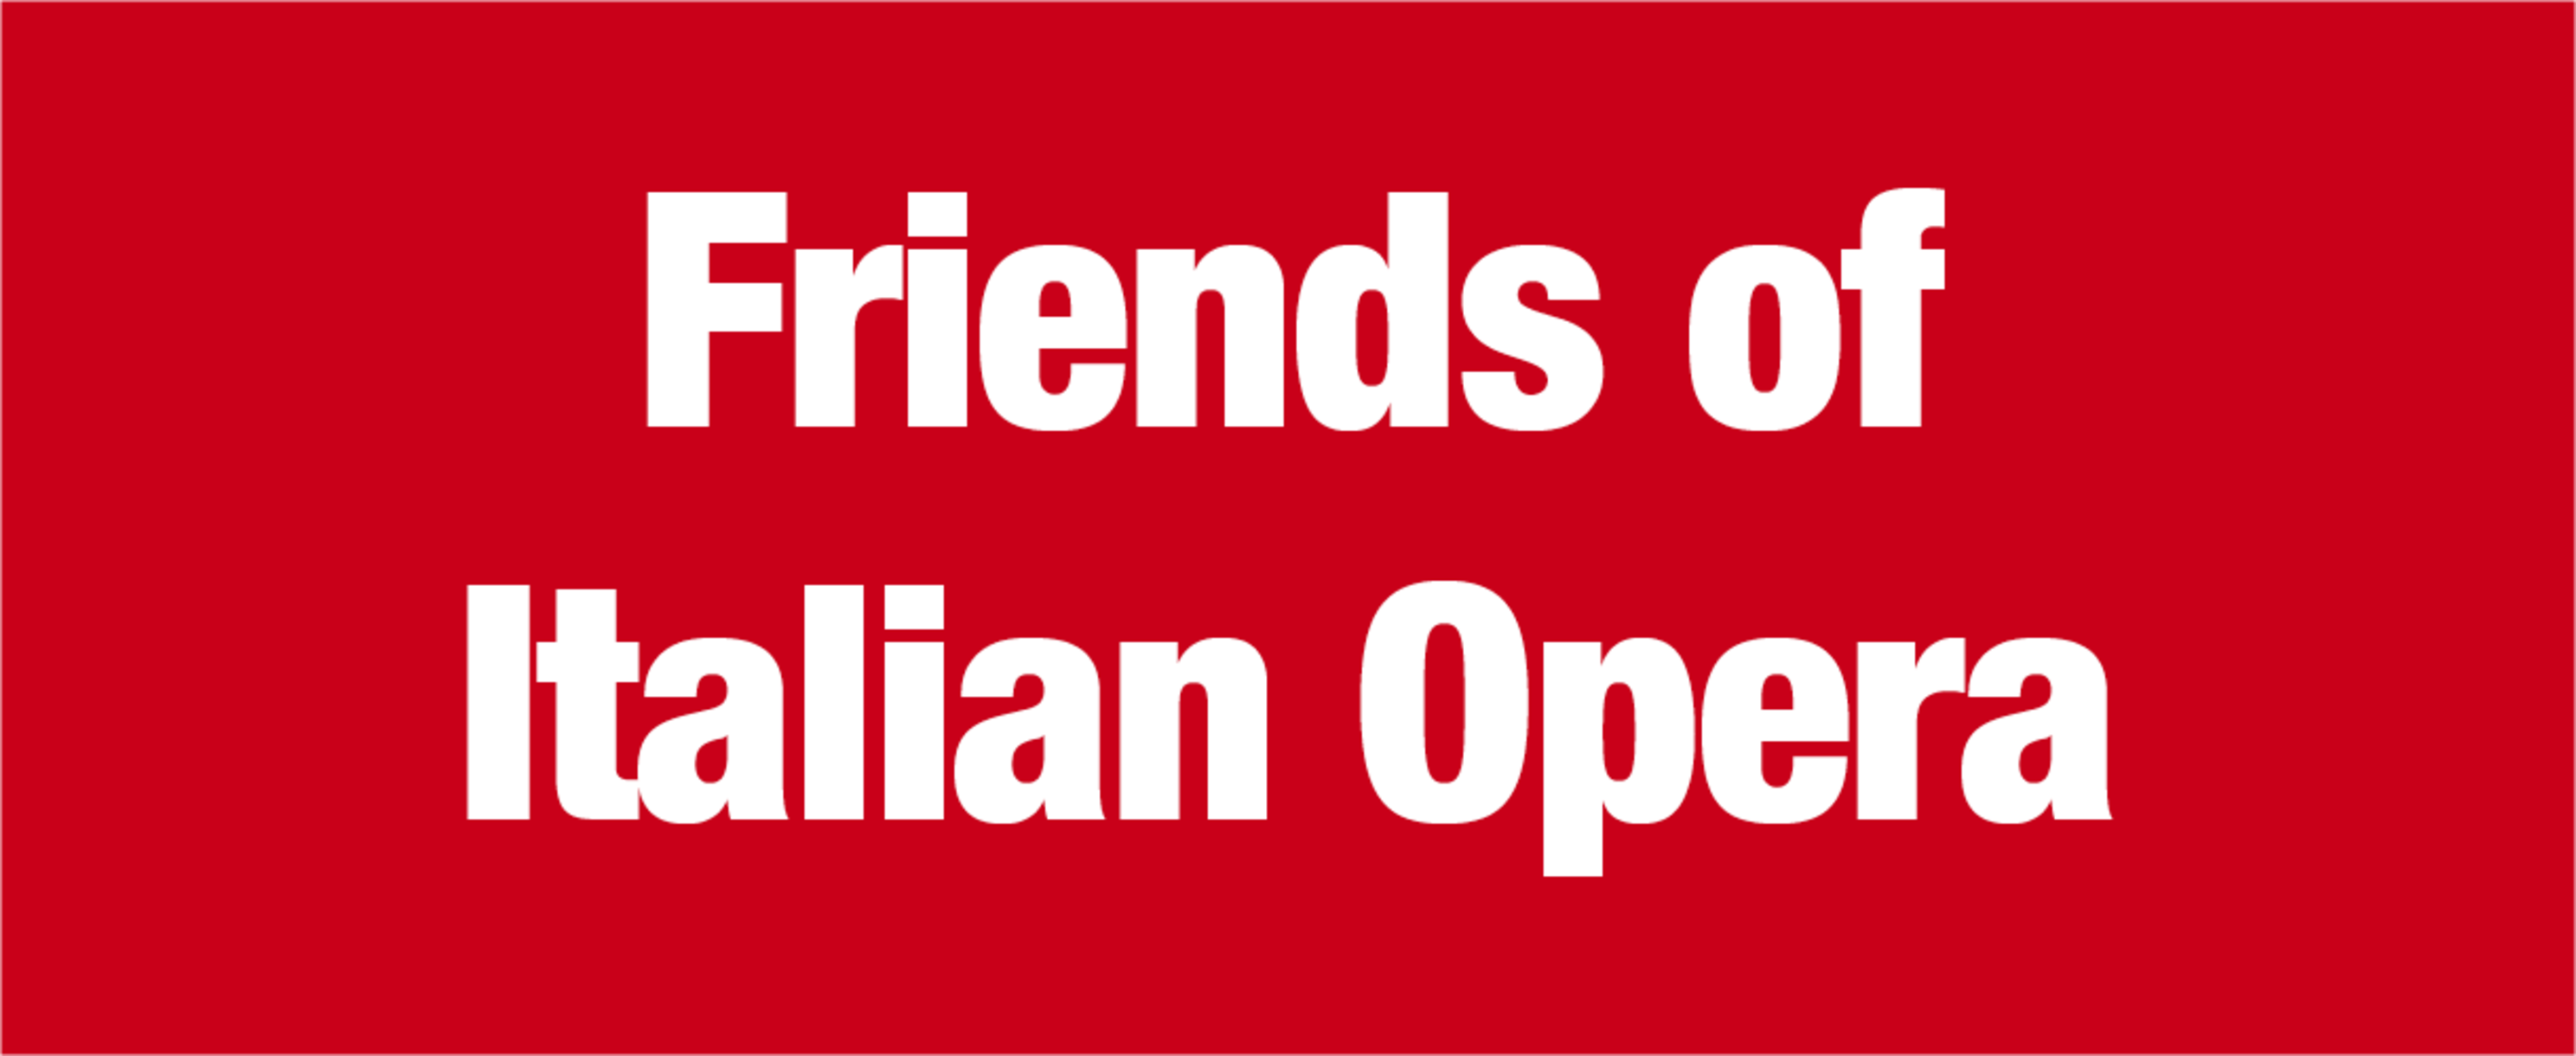 Friends of Italian Opera - Italienisches Theater in Berlin